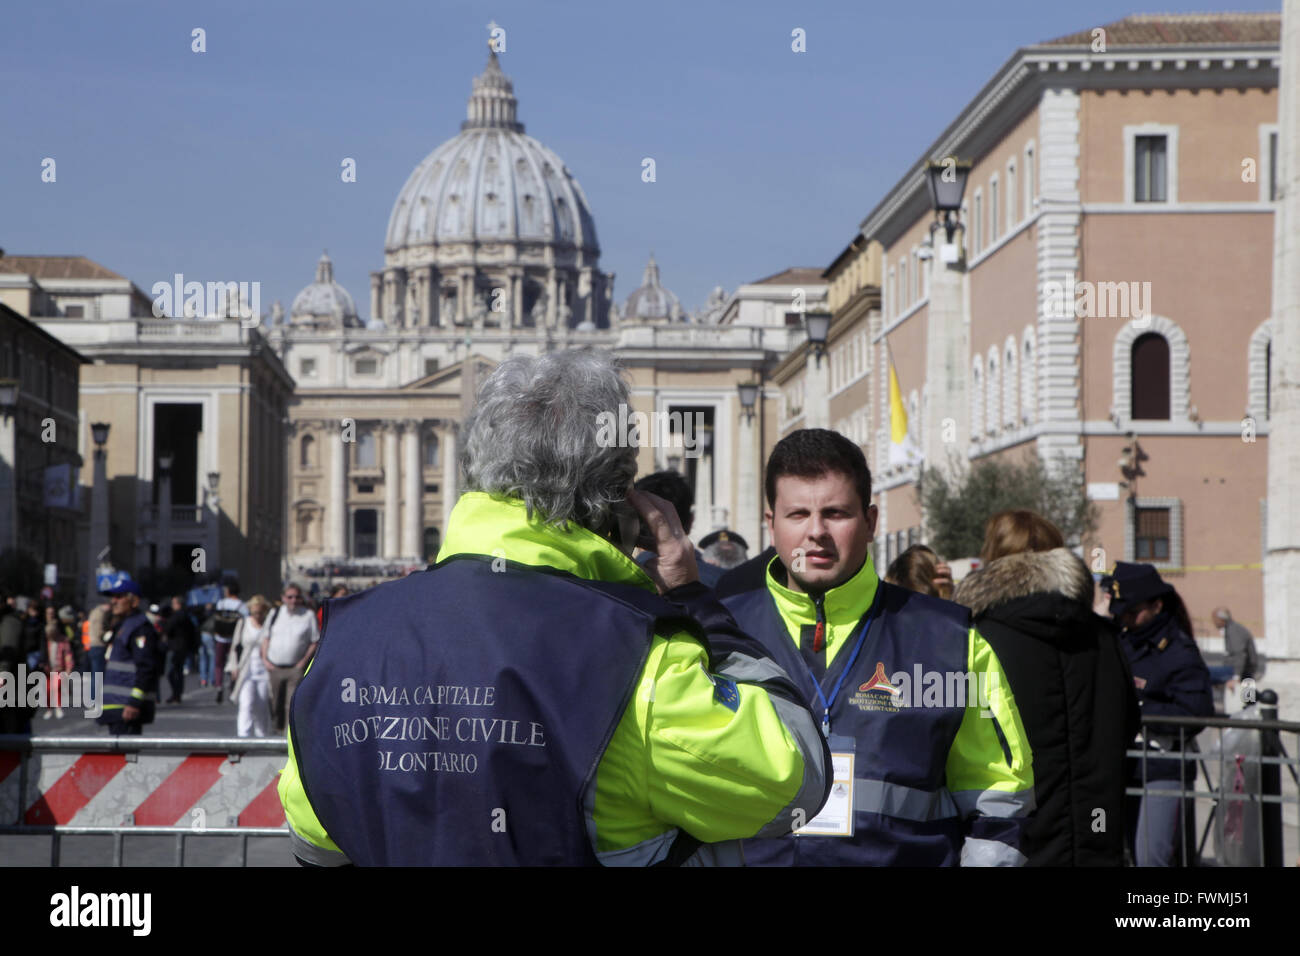 Rescue team control the access to St Peter's square during Pope Francis Easter Mass, Vatican City - Stock Image